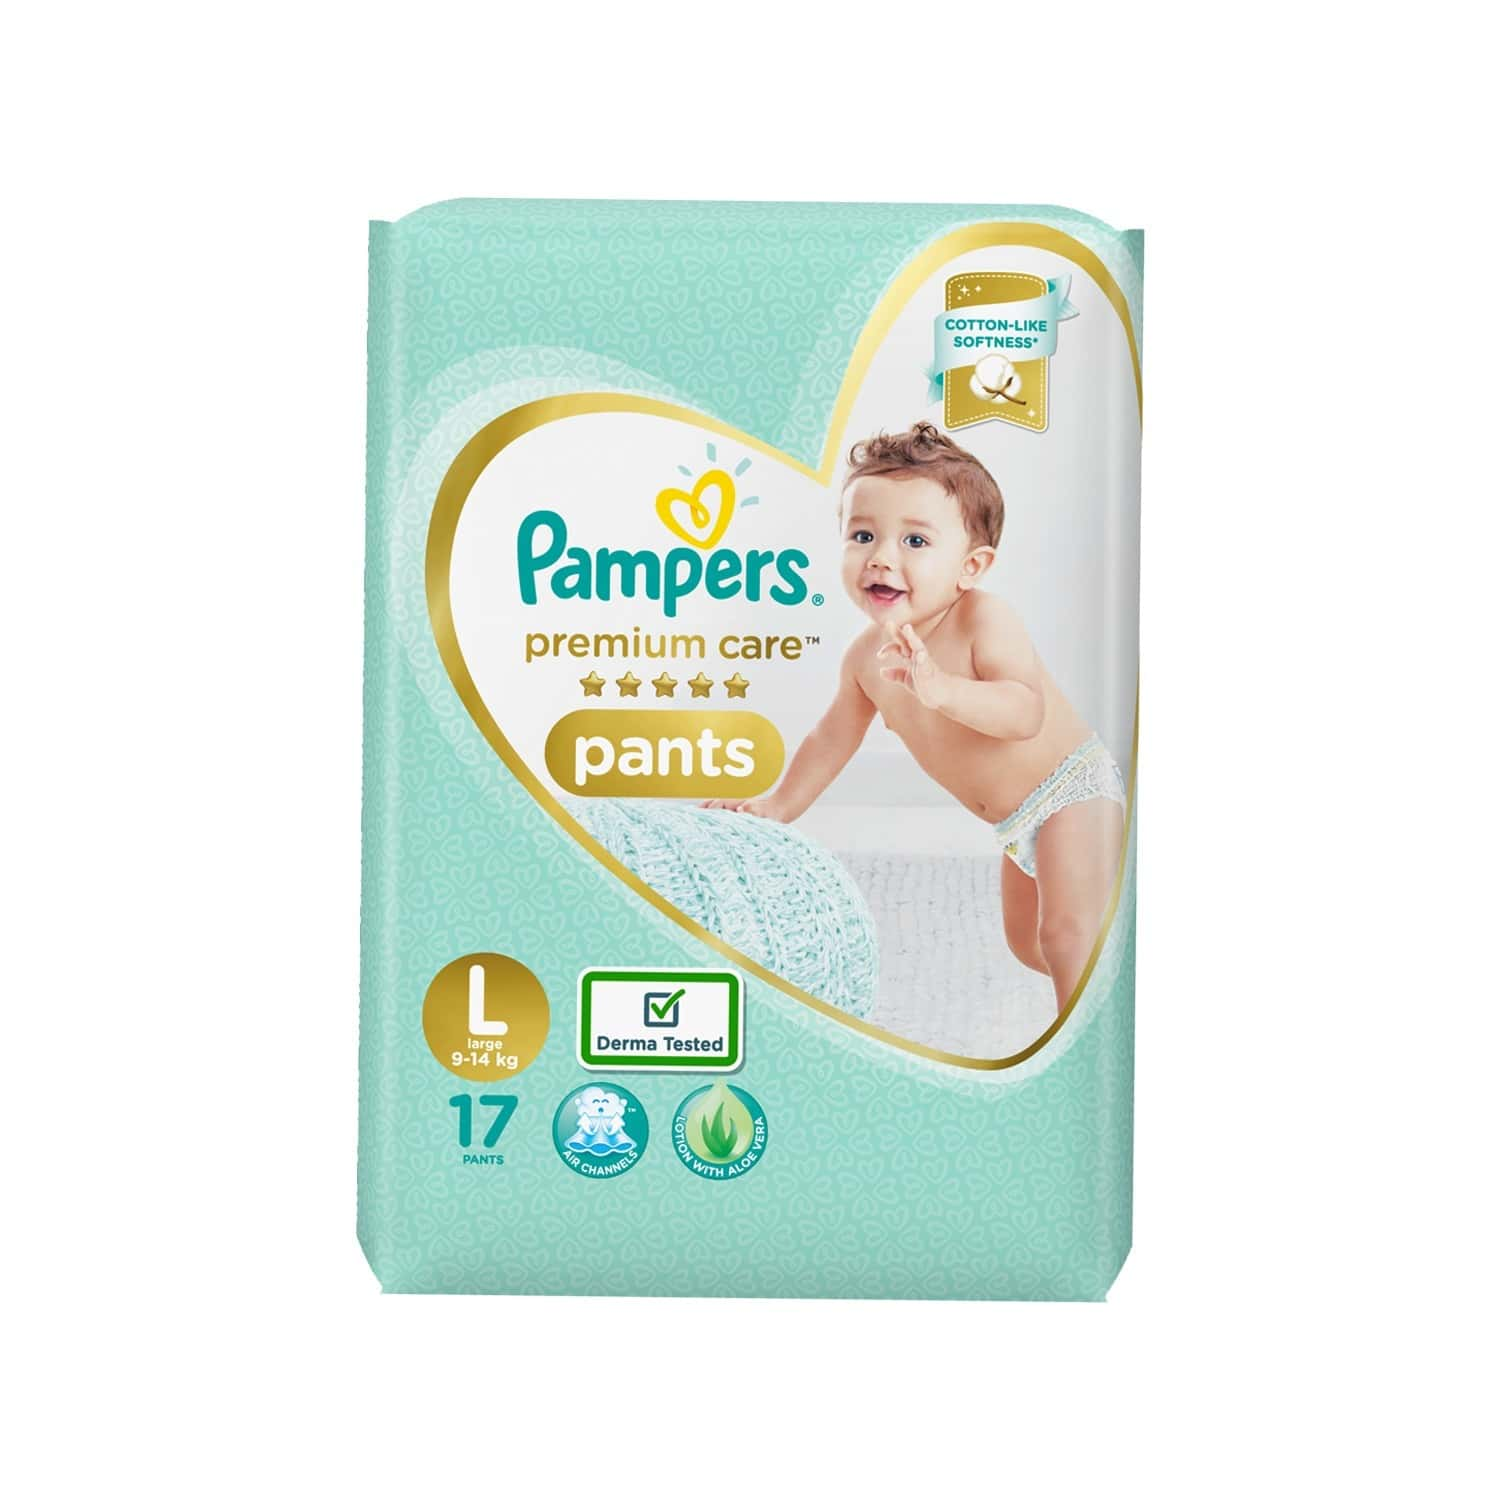 Pampers Premium Care Pants Diapers - Large - 17 Count